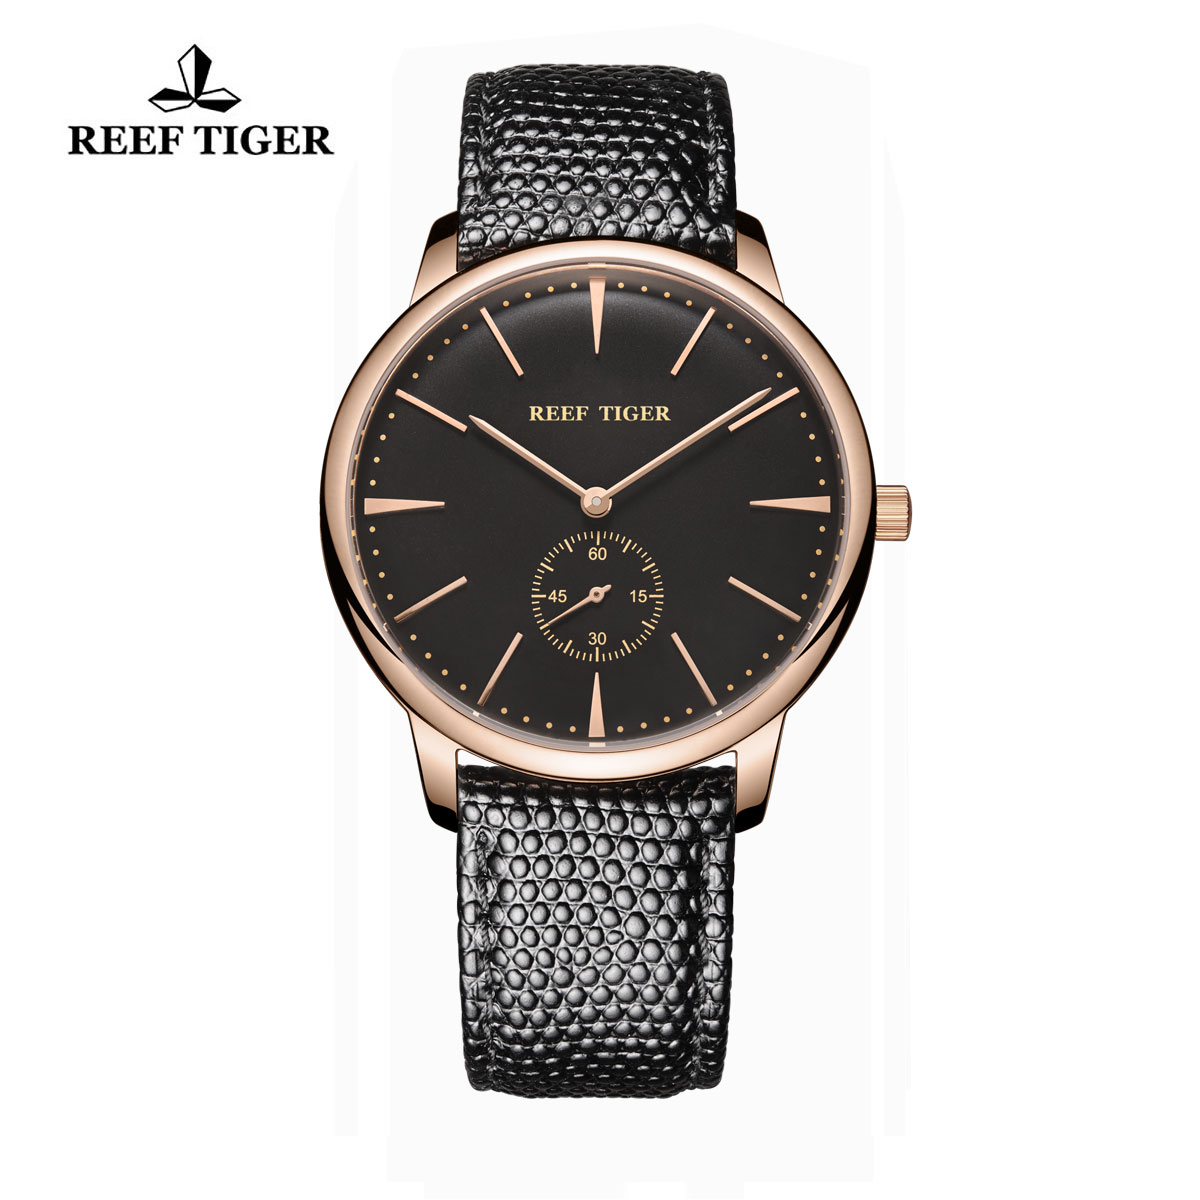 Reef Tiger Vintage Couple Watch Black Dial Rose Gold Calfskin Leather RGA820-PBB